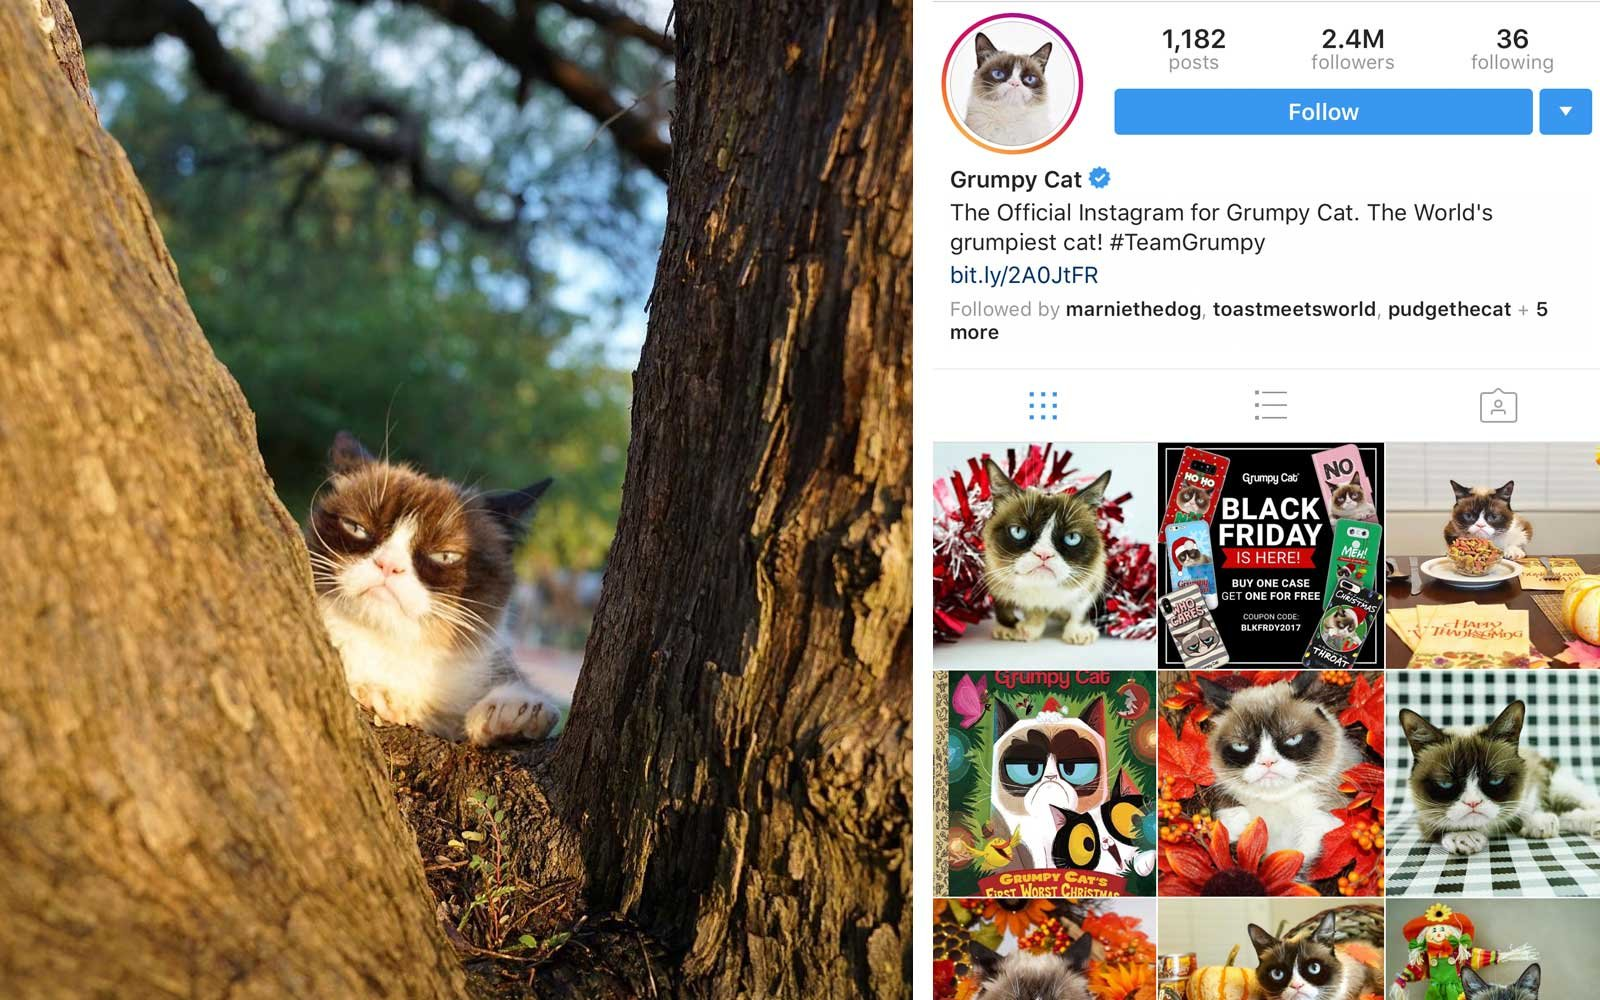 Grumpy Cat (@realgrumpycat) - Cat, US - 2.4M Followers